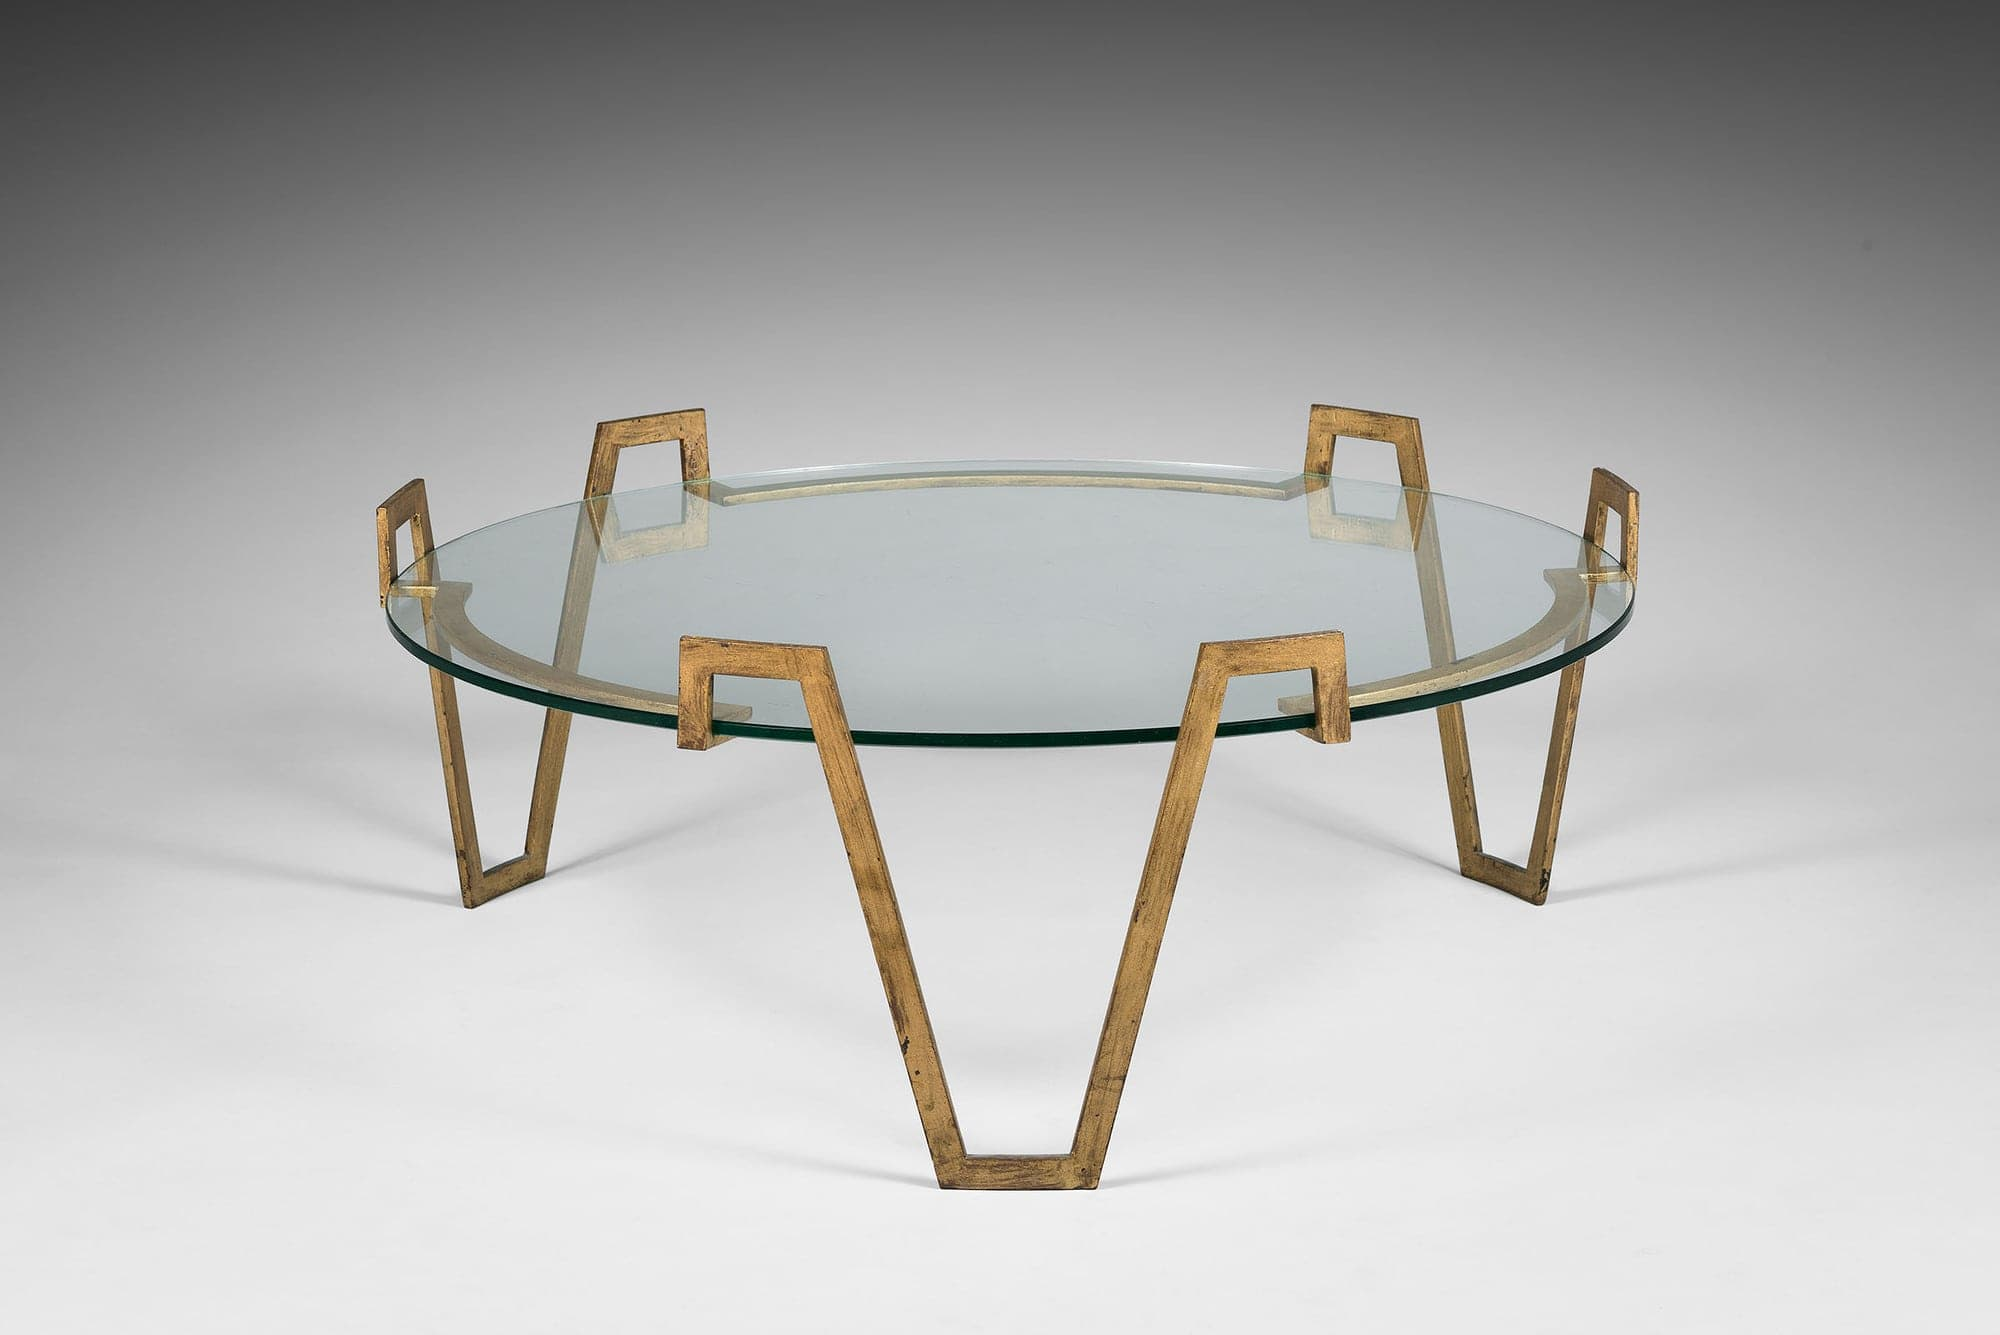 """Jean Royère, """"Val d'or"""" low table (sold), vue 02"""